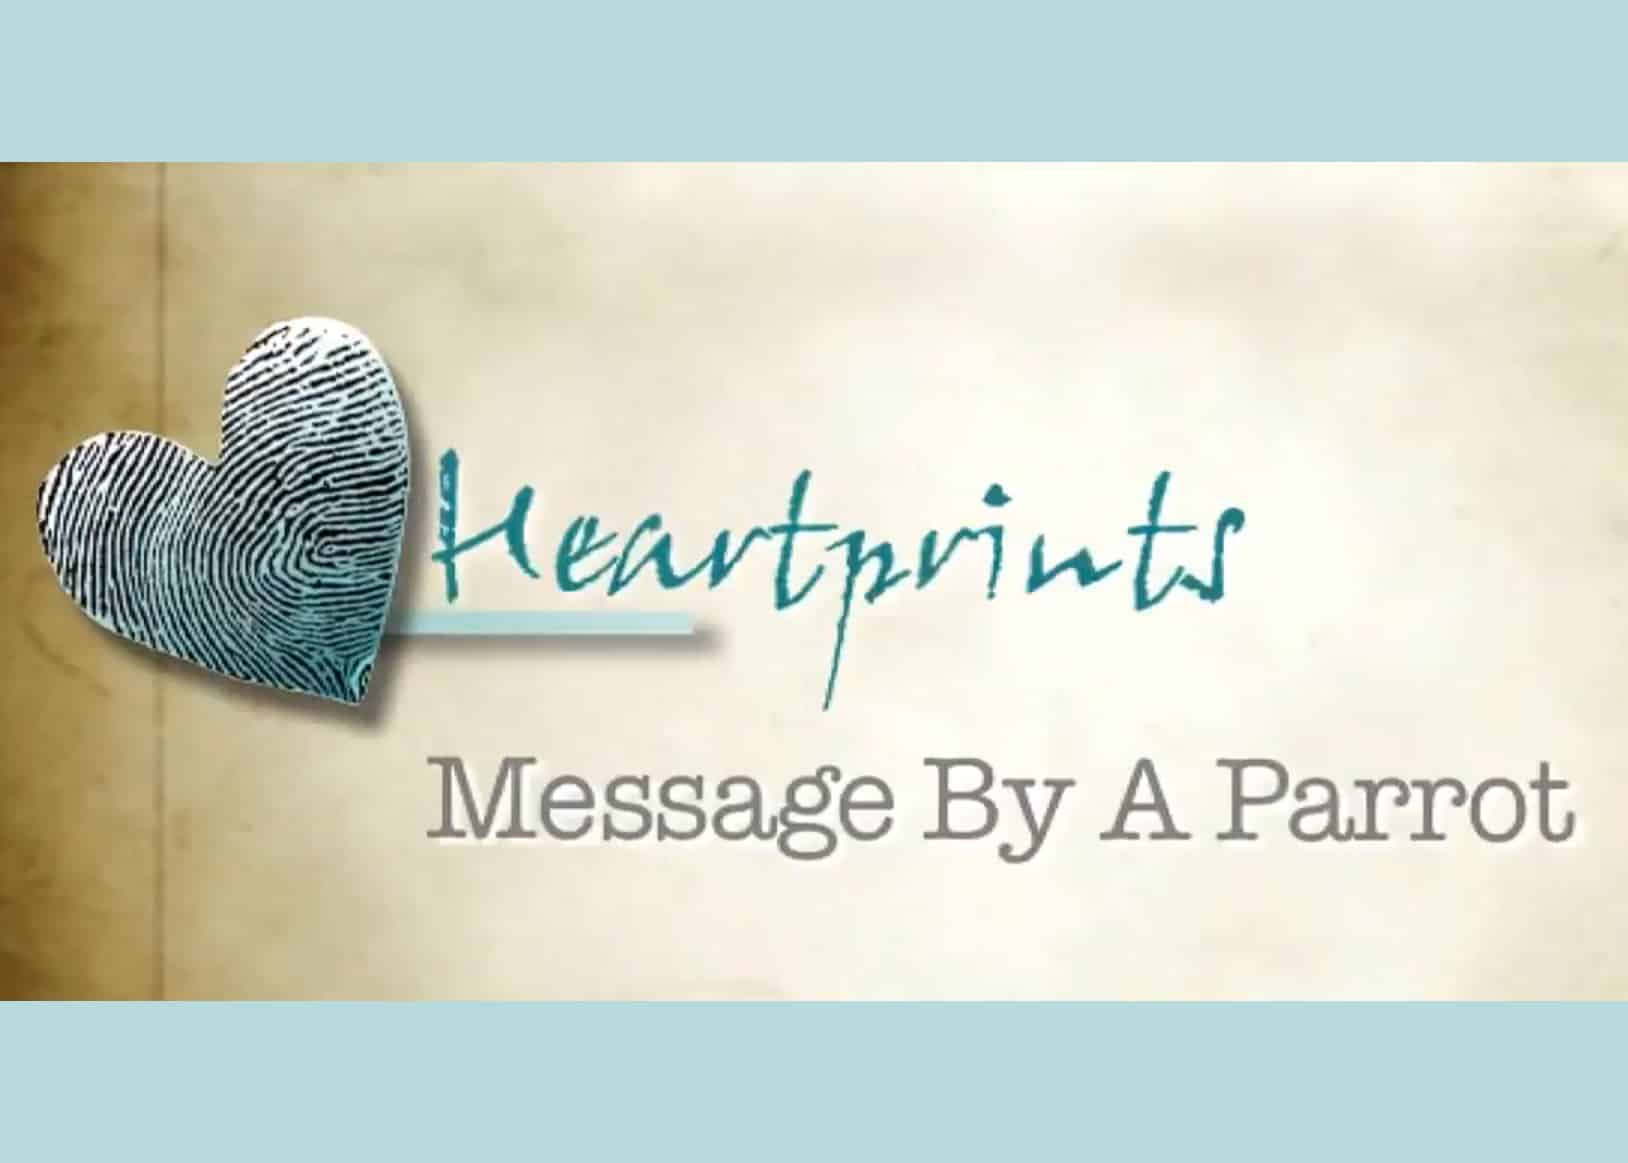 Heartprints Parrot